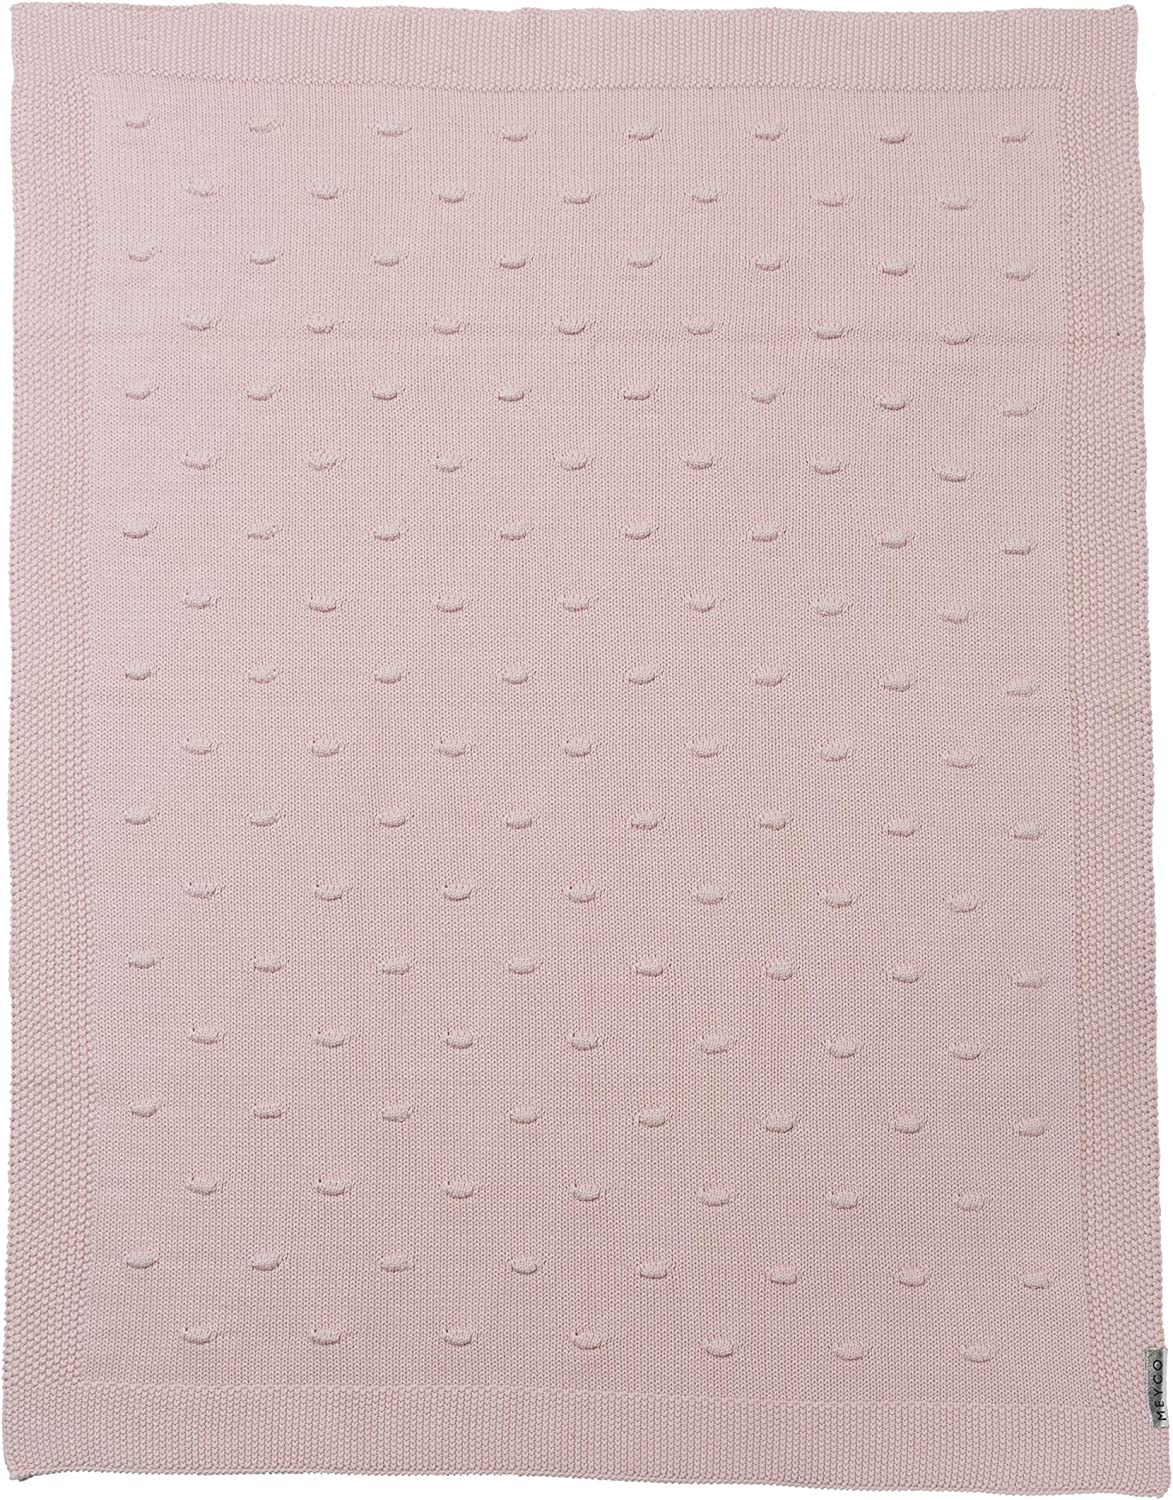 Meyco 2733052 Knitted Blanket with Knot 75 x 100 cm Pink